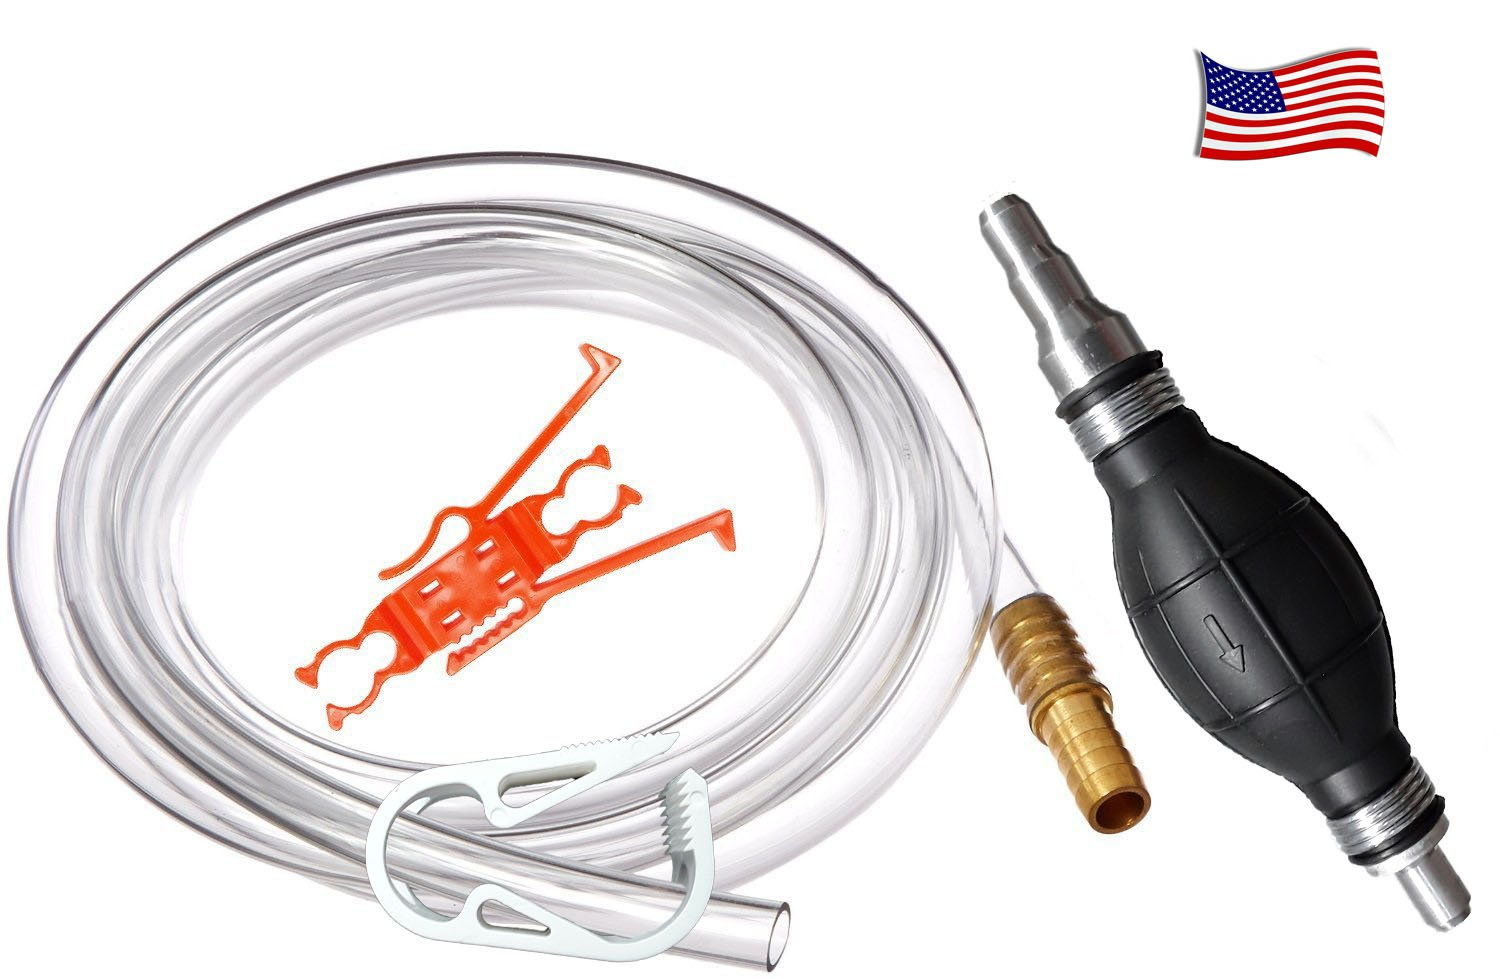 Plumber's Siphon Pro - Universal Gas, Oil, Potable Water - 1 Gl. Per Min. - W/ 9 ft. of Hose & Fits Any Hose, Any Length - Brass Weight & Hose Extender to Sink Hose -More Gl. Per Minute W/Larger Hose